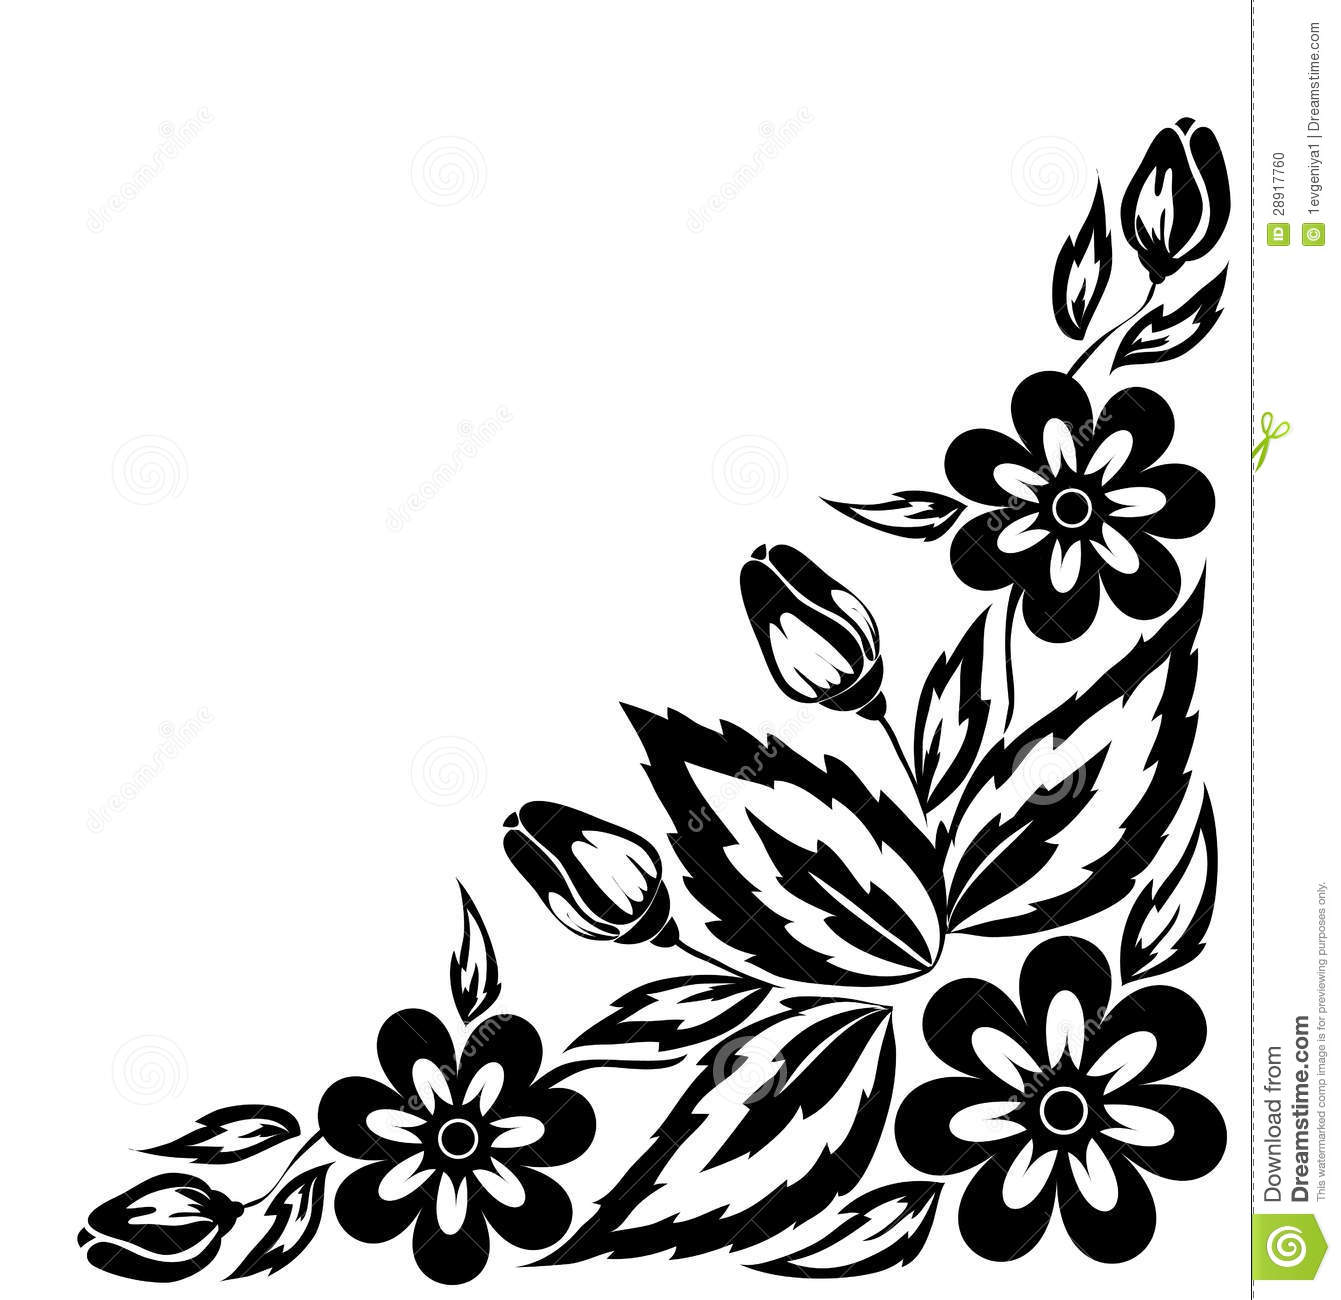 Abstract black and white floral arrangement in the form of border abstract black and white floral arrangement in the form of border angle stock photo mightylinksfo Image collections